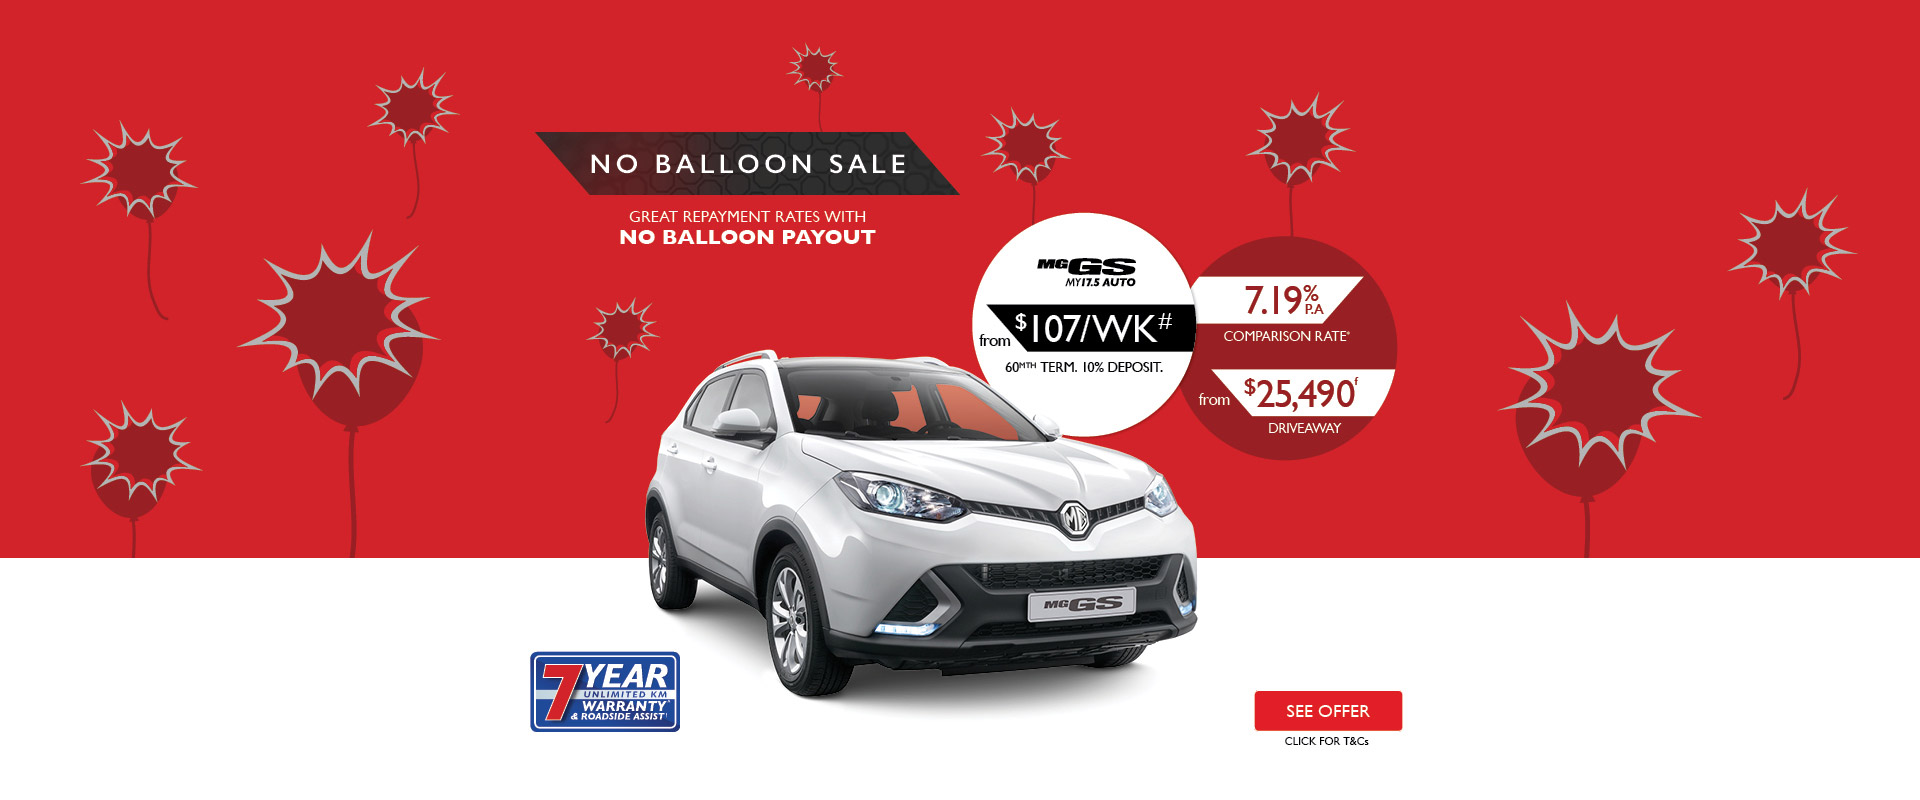 MG - No Balloon Sale - MG GS